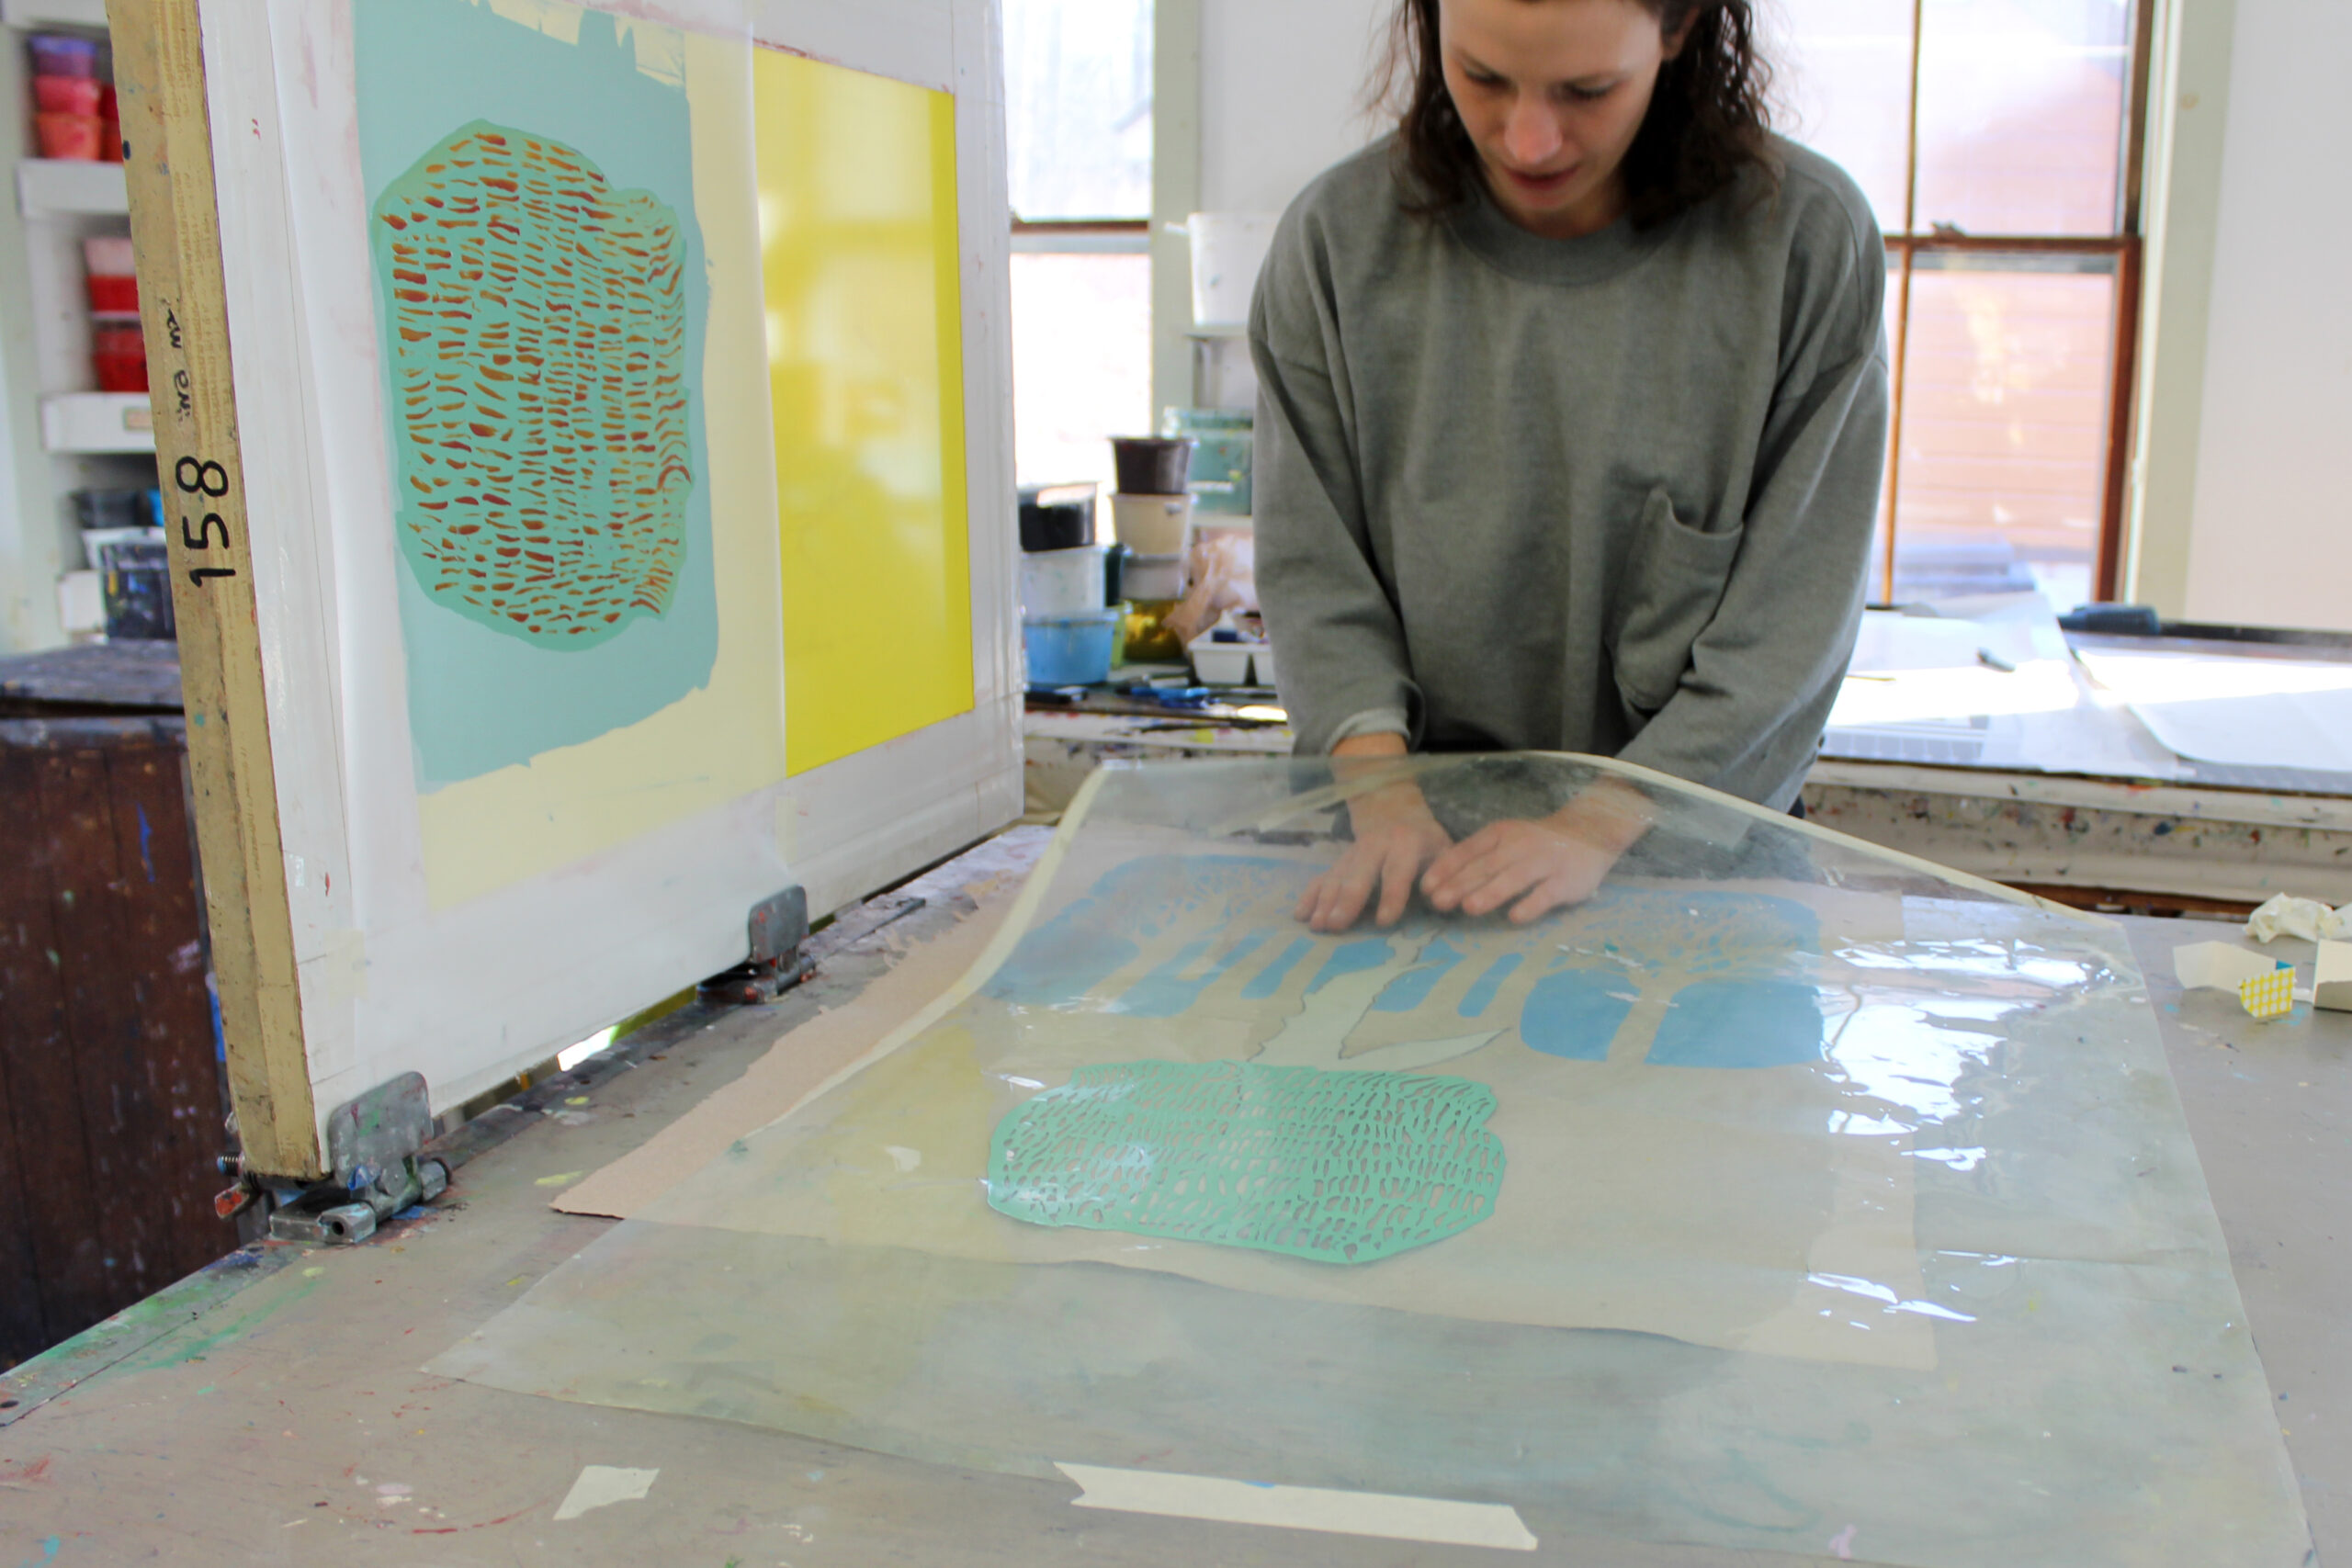 A woman leans over the artwork she is making. Her hands are under a clear plastic sheet